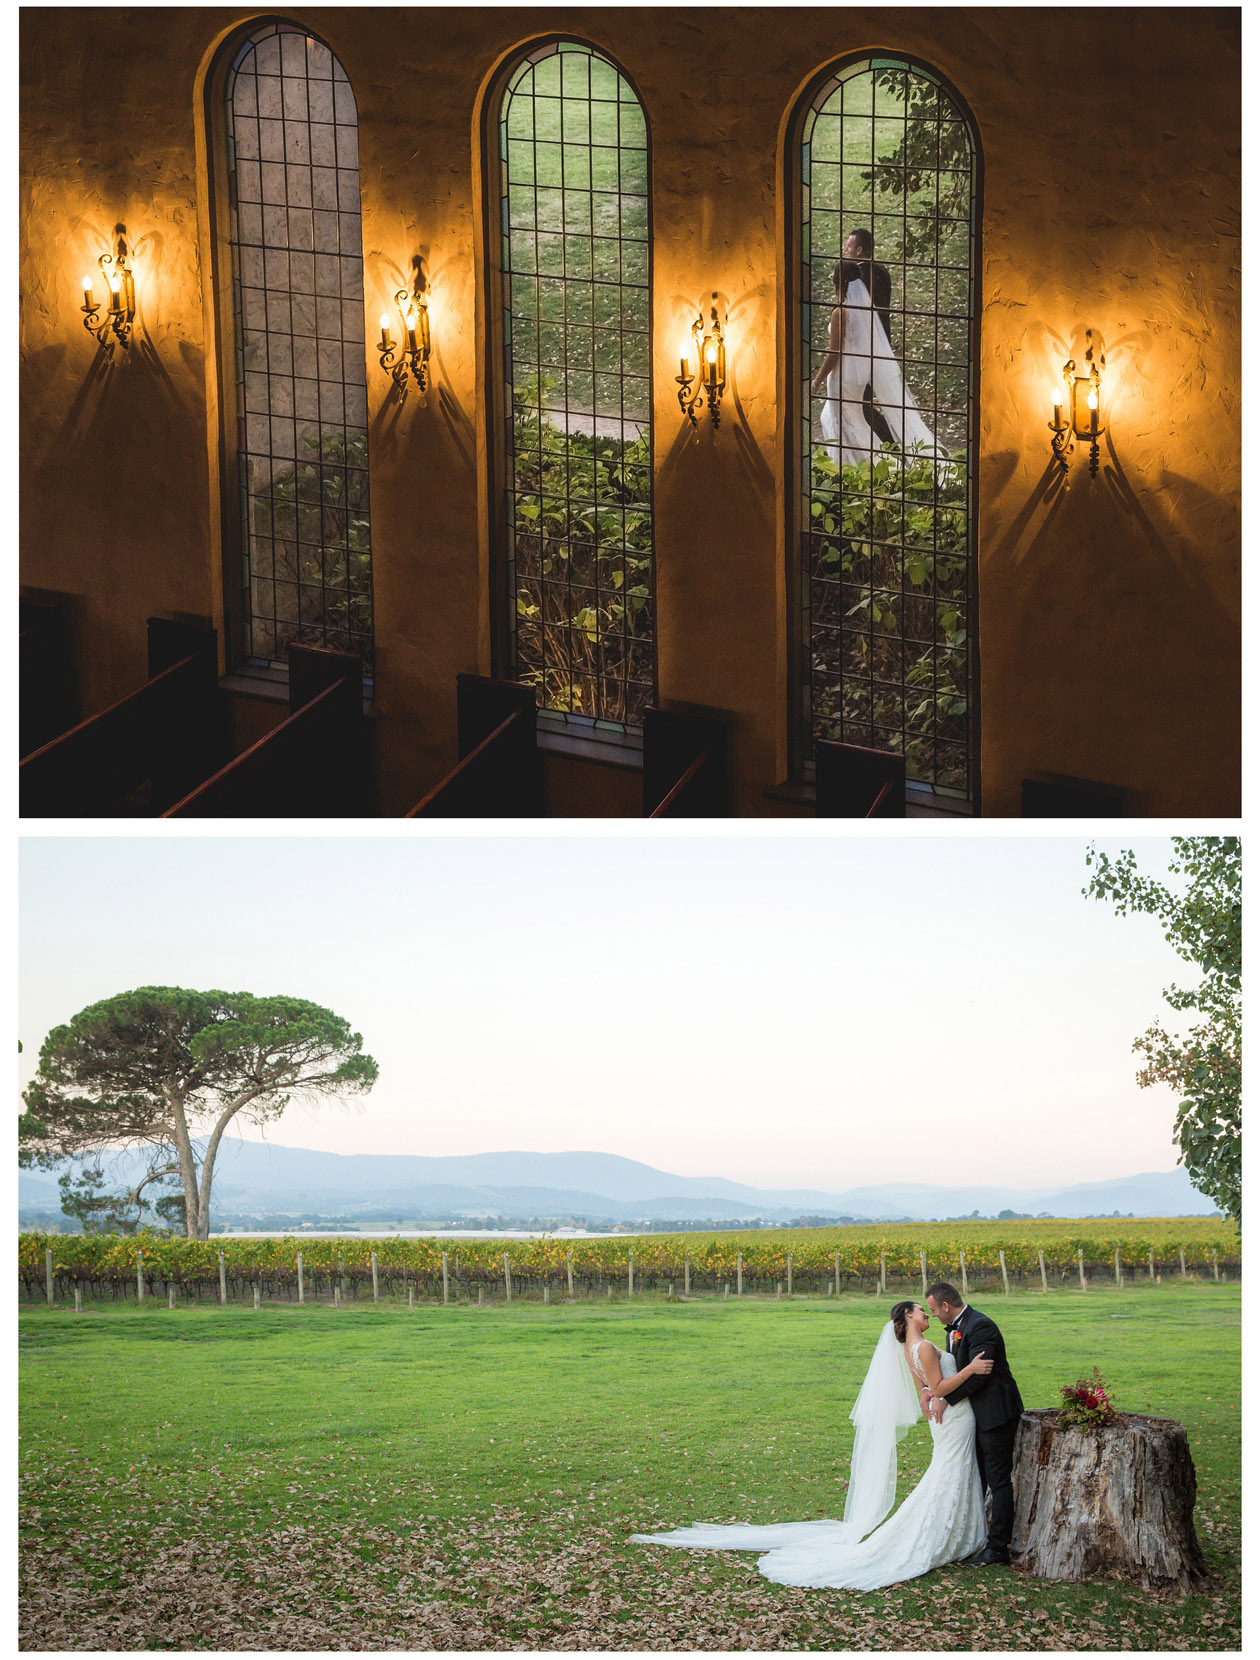 The handsome Macedonian groom and the beautiful Macedonian bride took many interesting and creative wedding photos after their wedding in Stones of the Yarra Valley